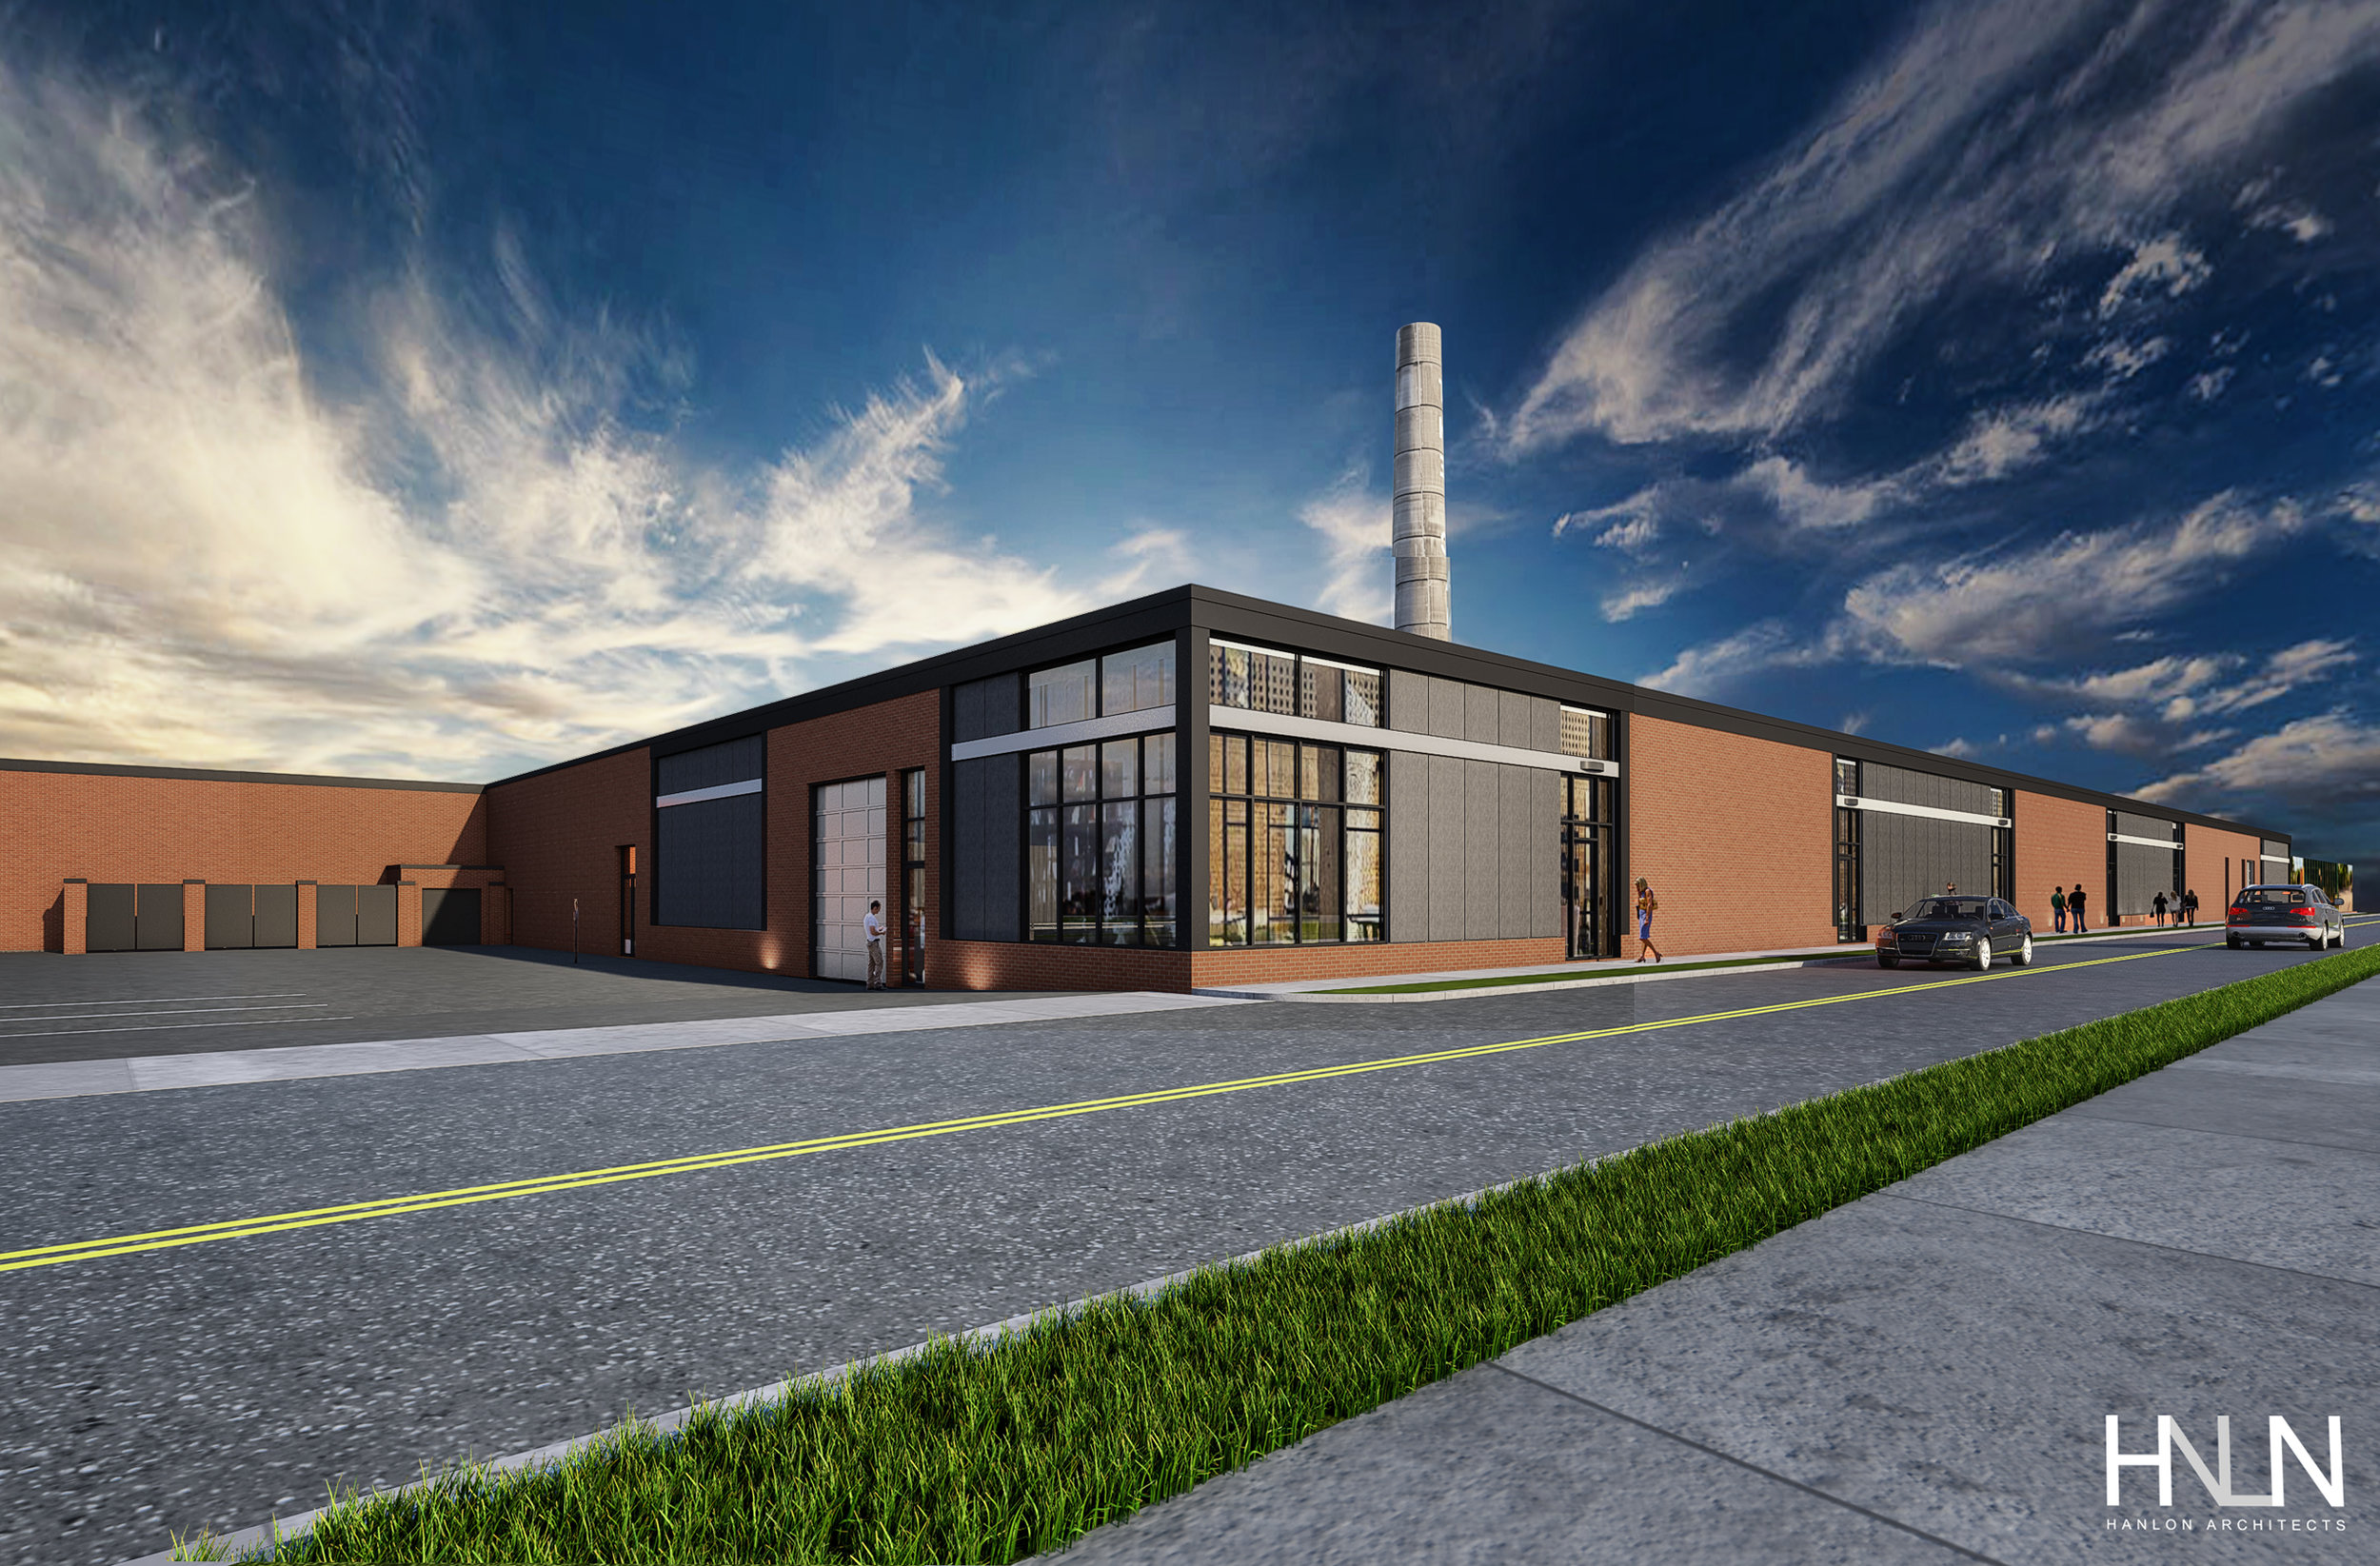 38 Cannery Exterior View 2.jpg